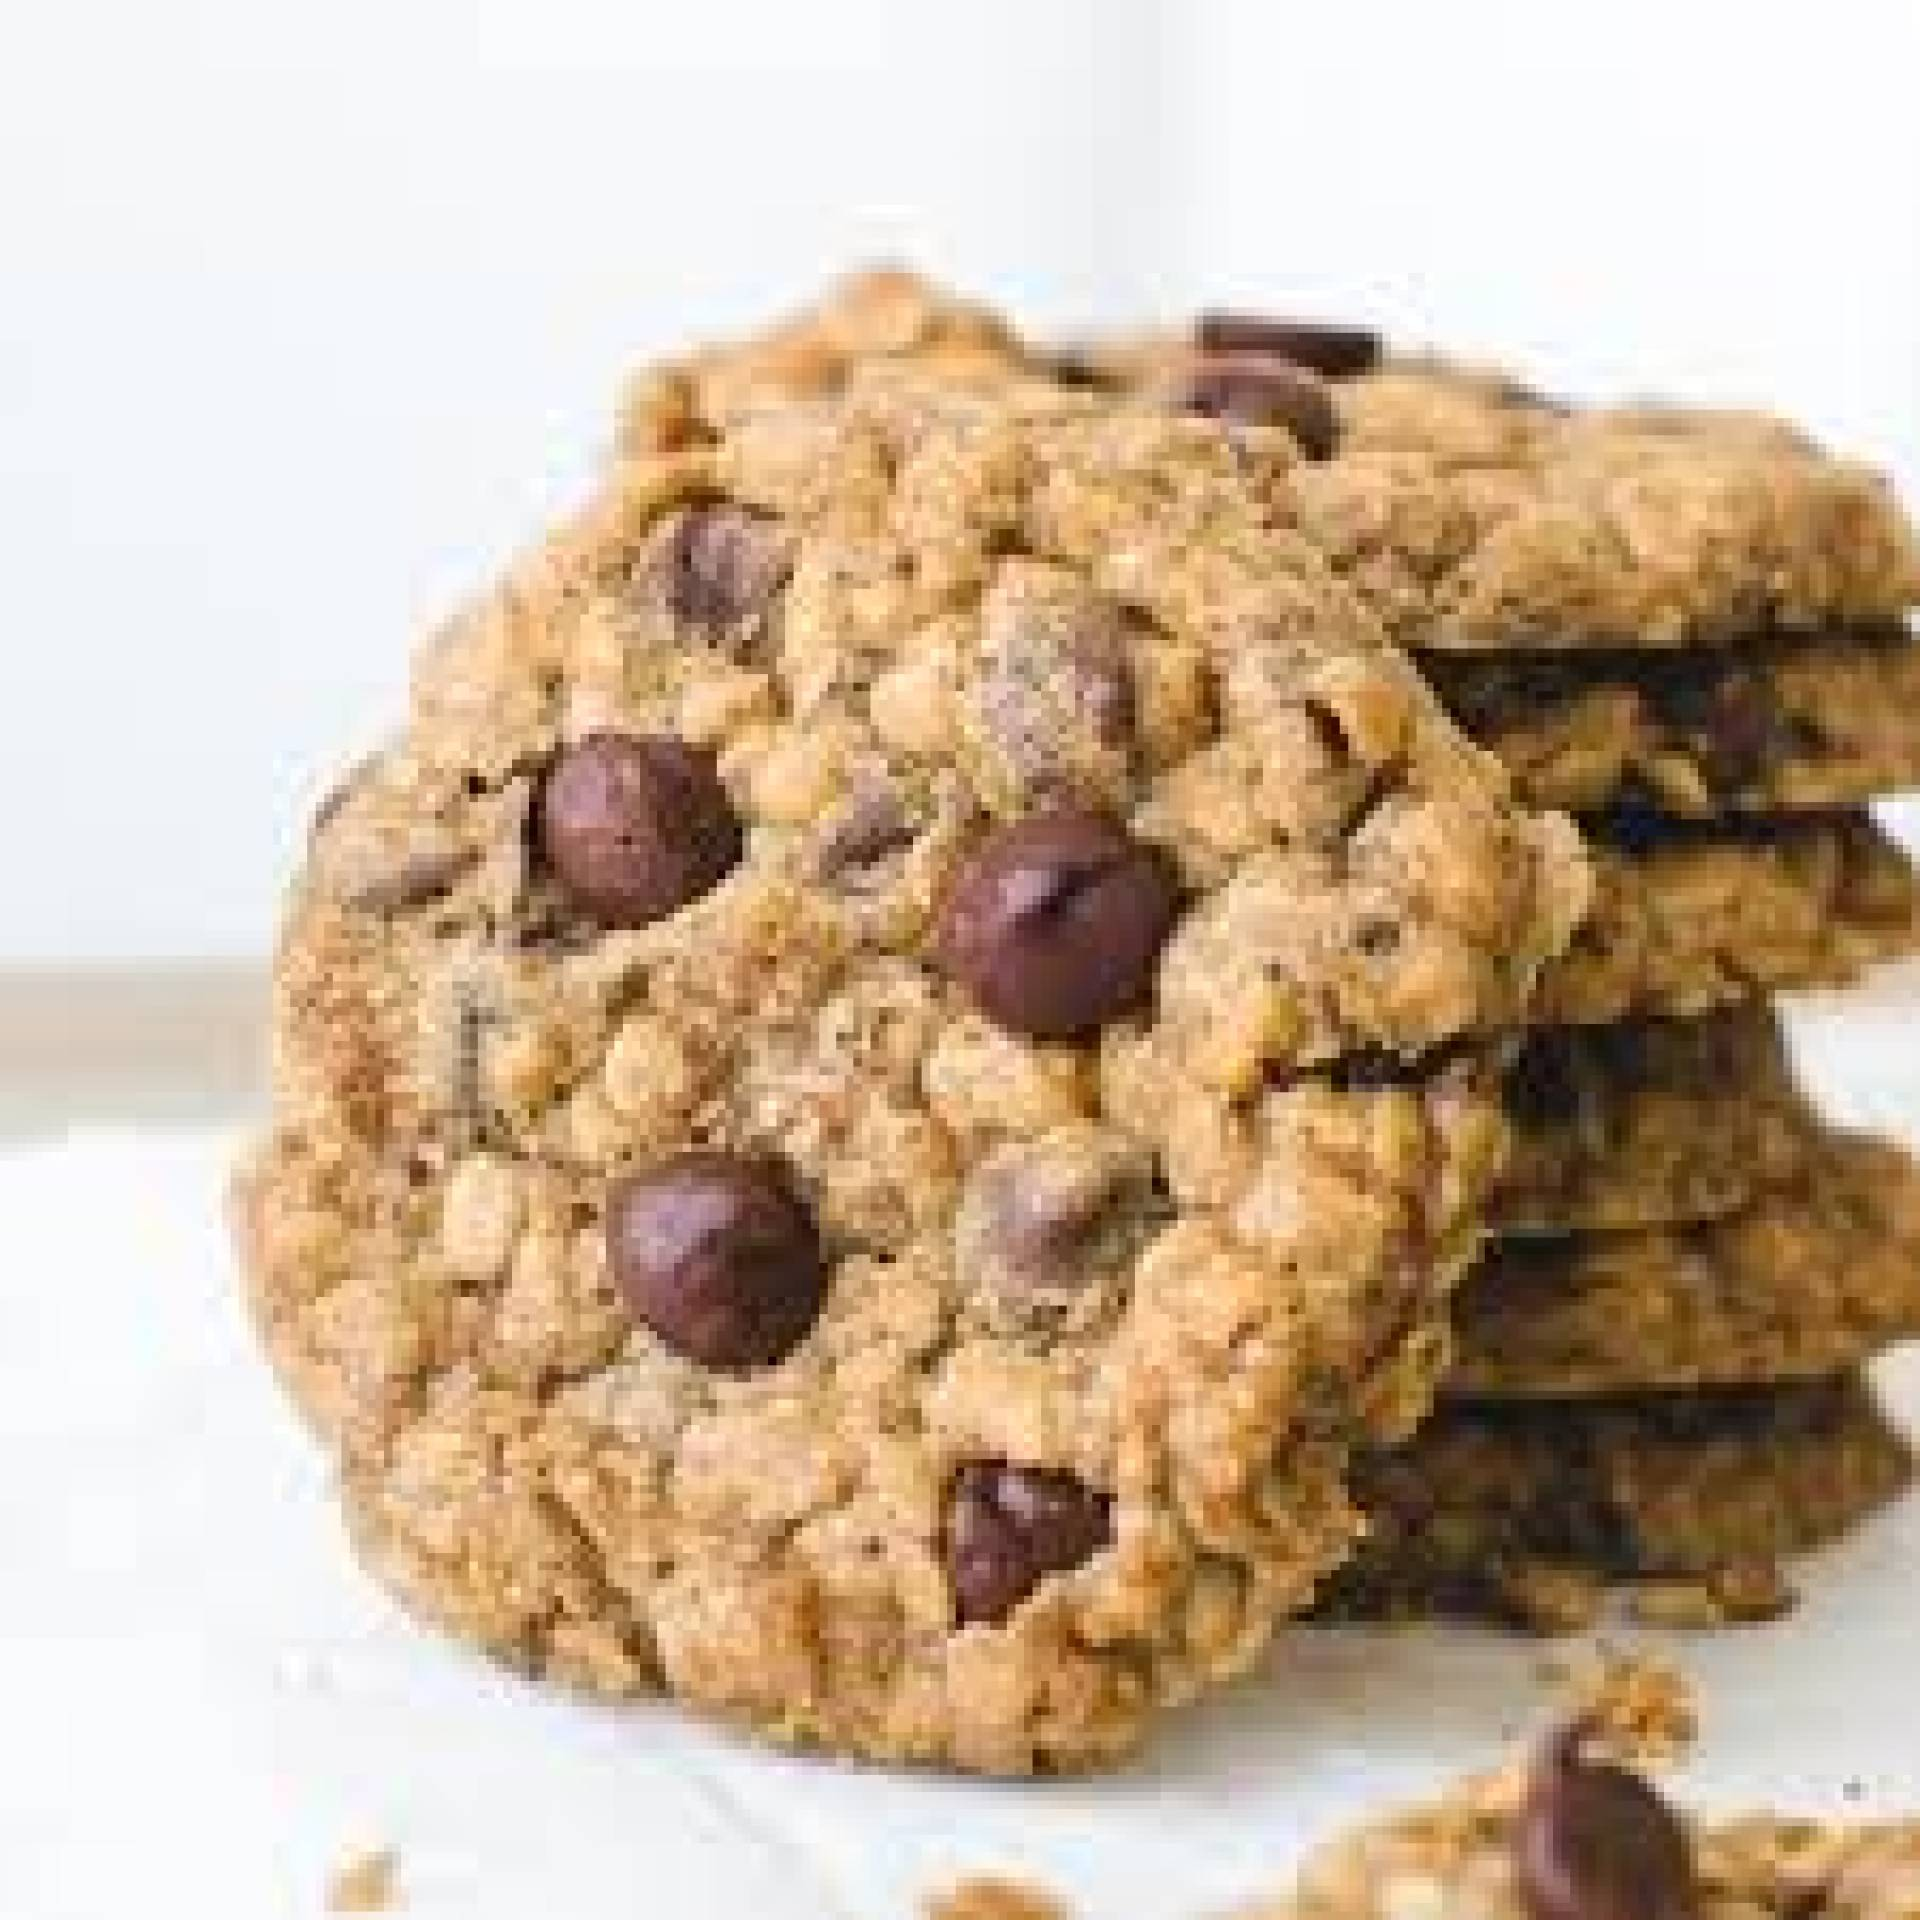 Oatmeal Chocolate Chip Cookie Six pack